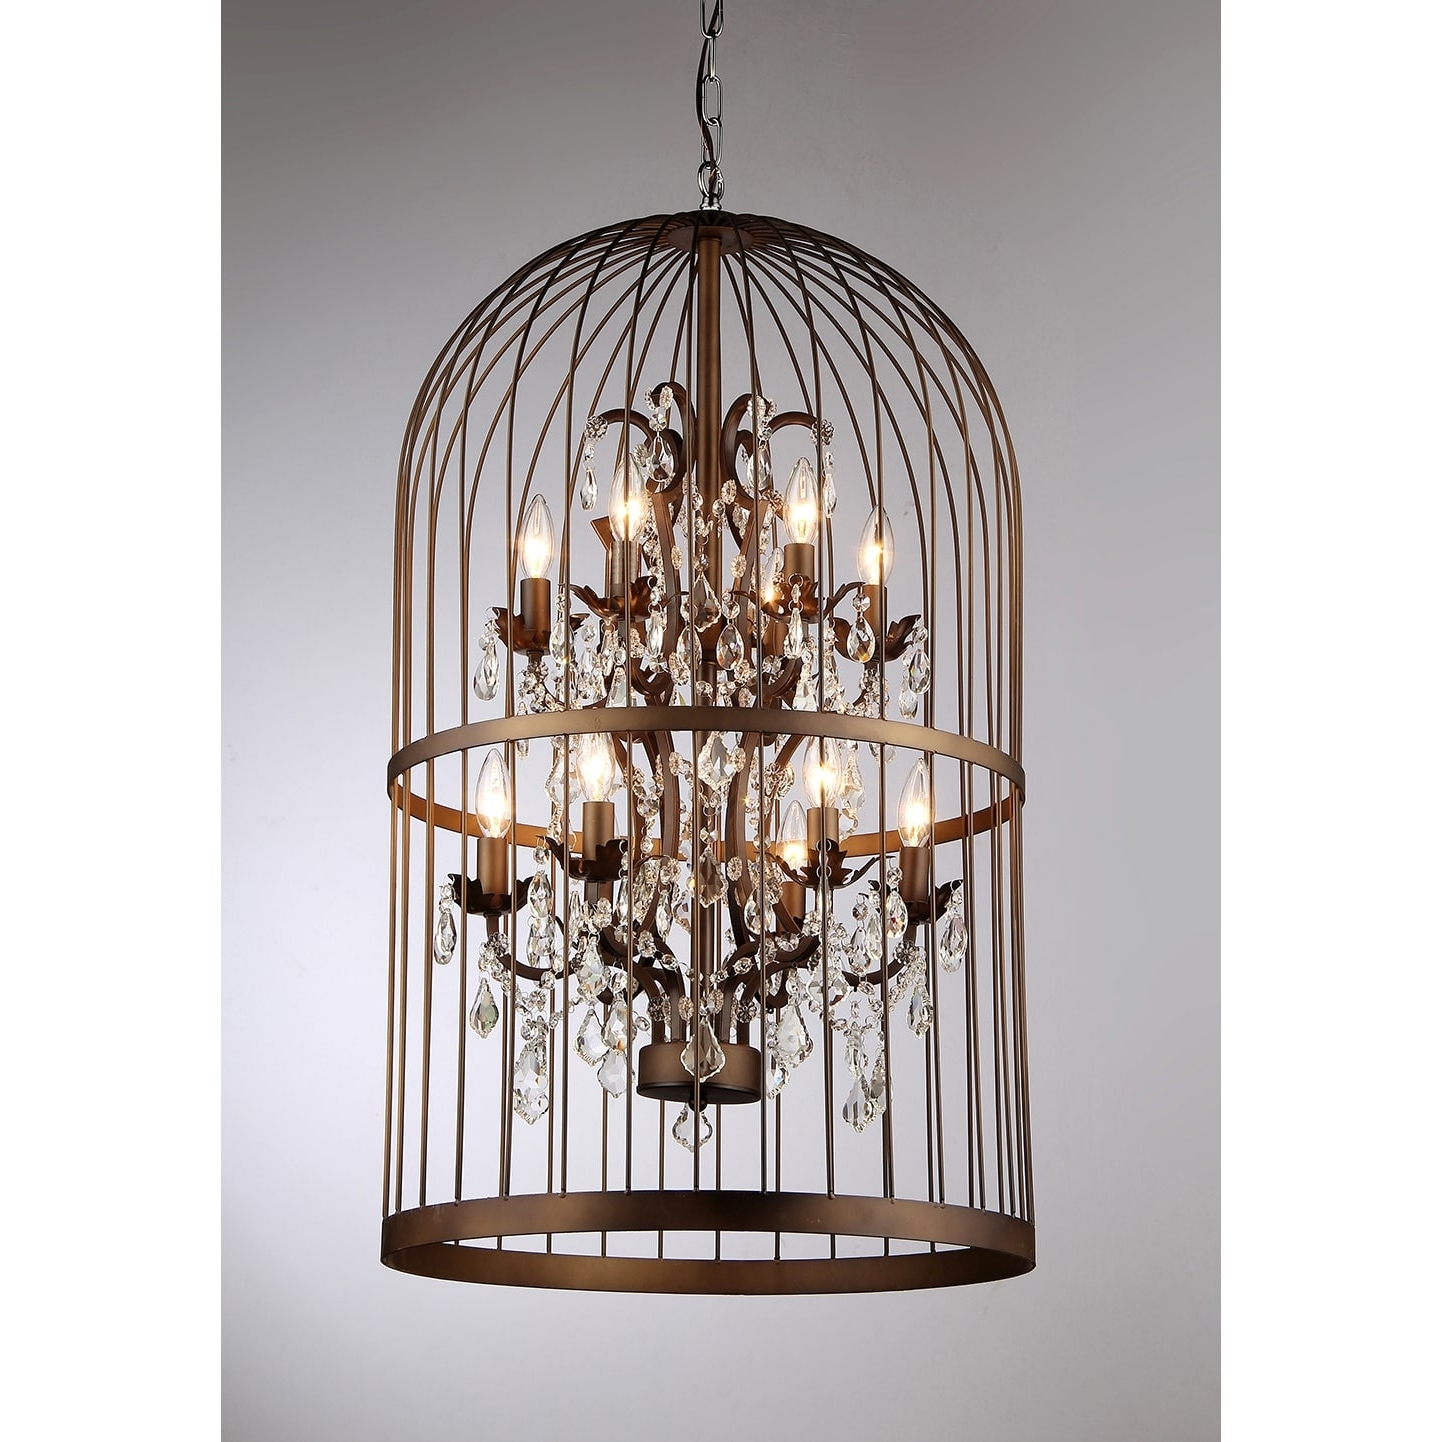 Preferred Caged Chandelier With Warehouse Of Tiffany Rinee Iii Cage Chandelier – Free Shipping Today (View 17 of 20)